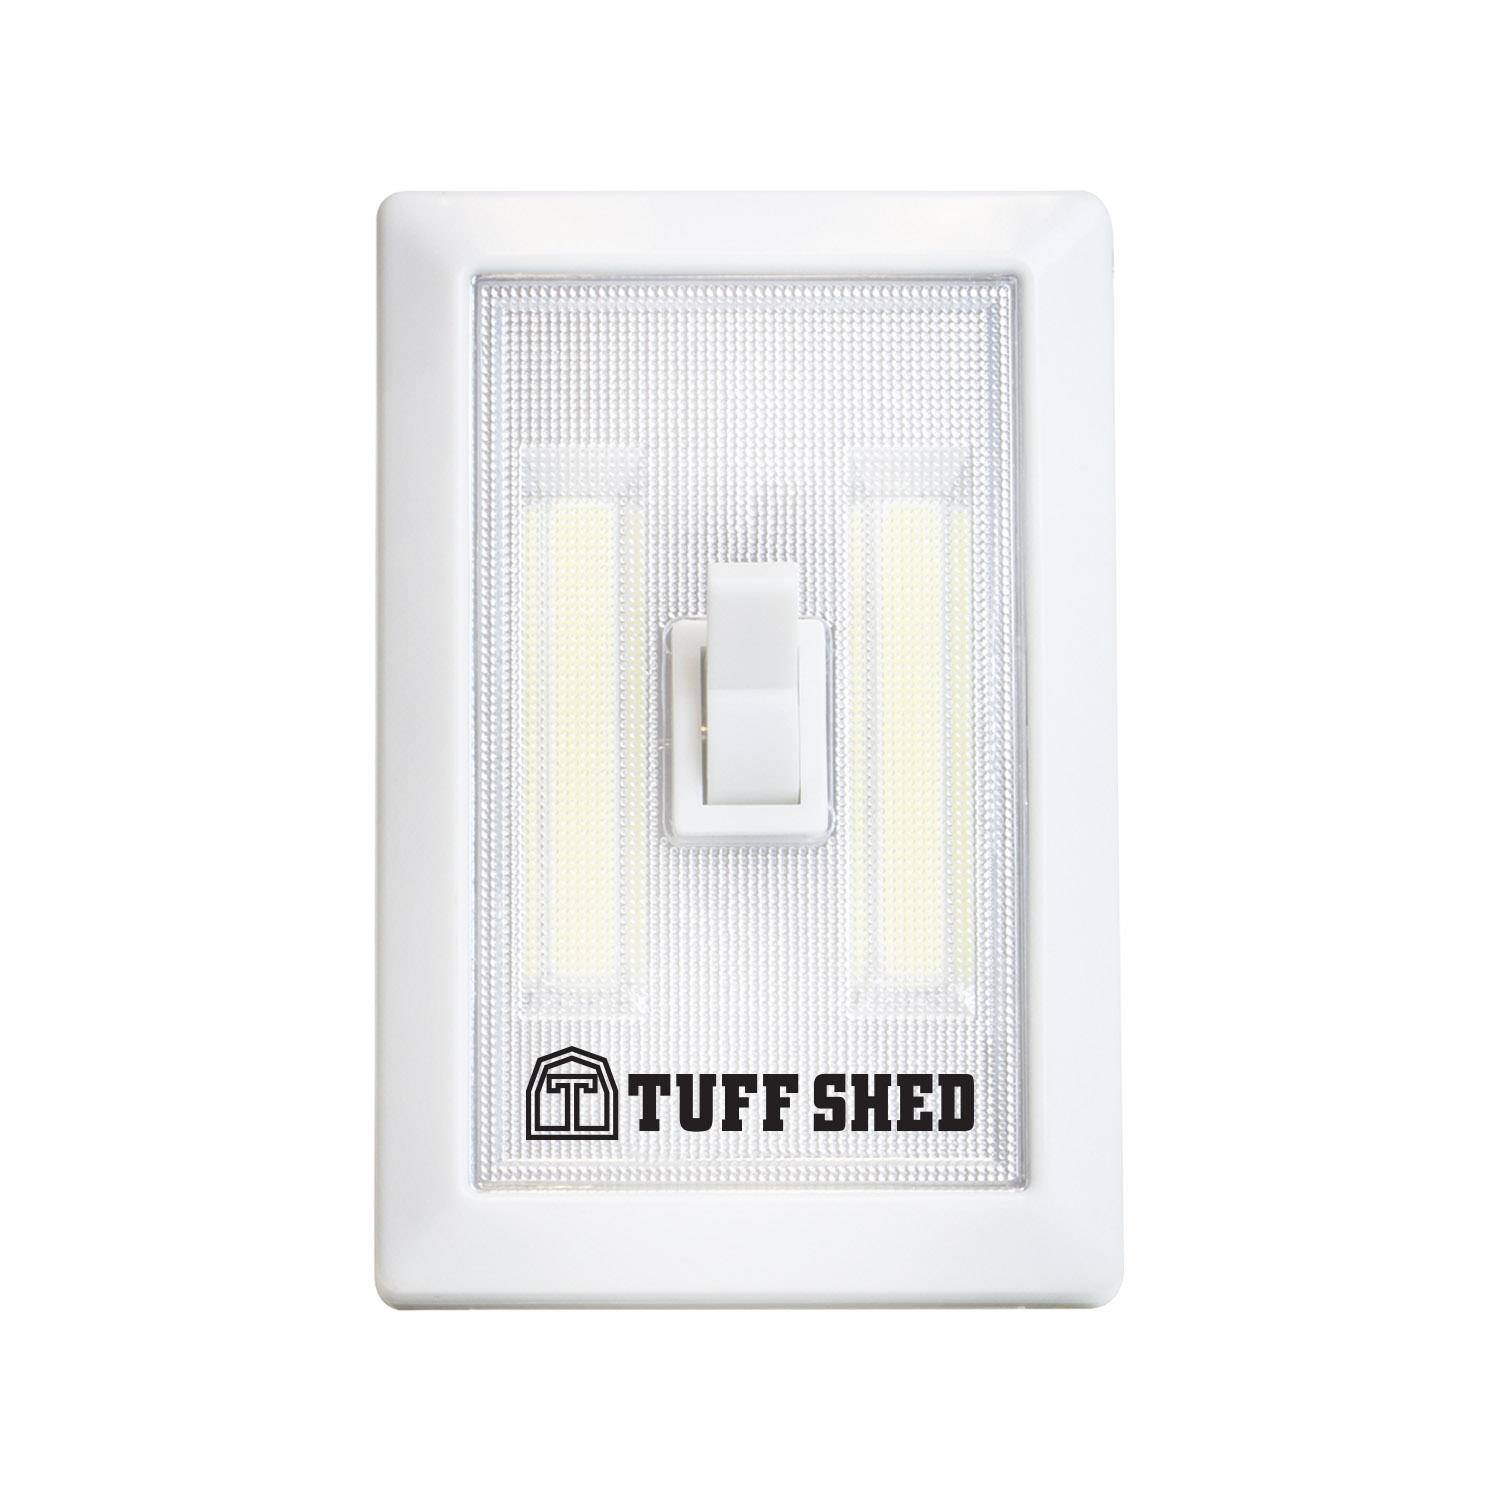 2963 - COB Light Switch